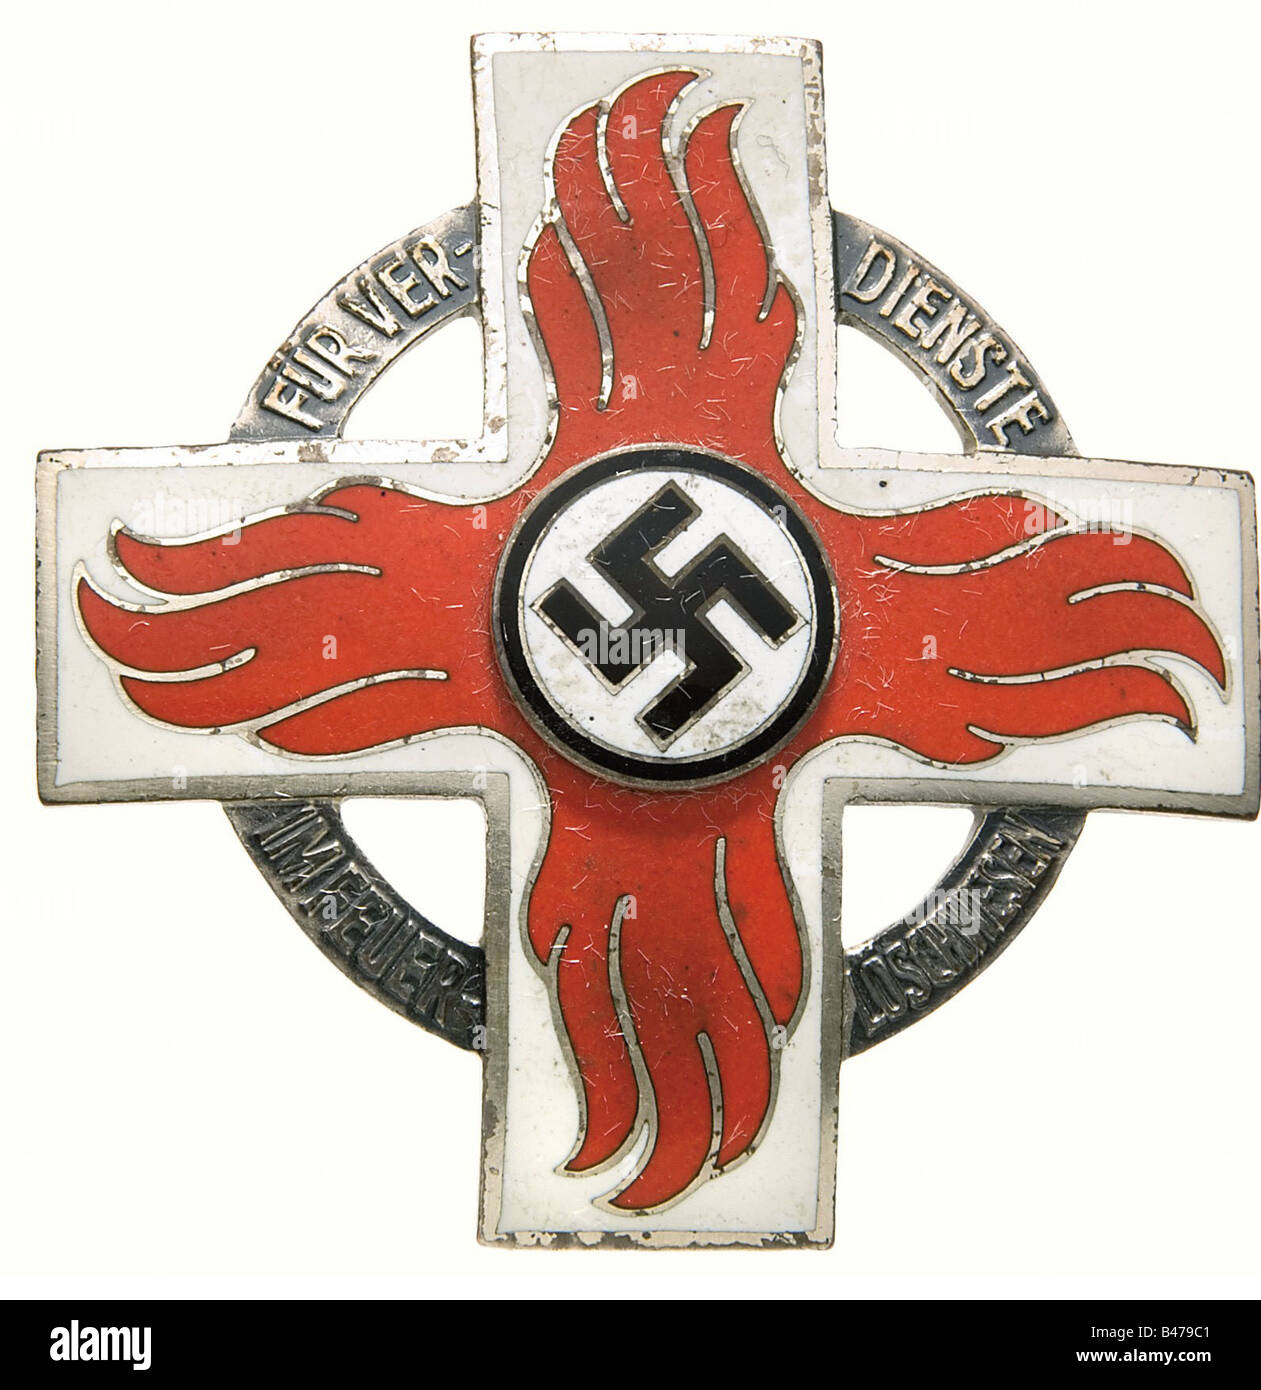 A Fire Brigade Honour Badge 1st Class., Slightly cambered pinned cross with waisted needle, non-ferrous metal, enamelled - Stock Image